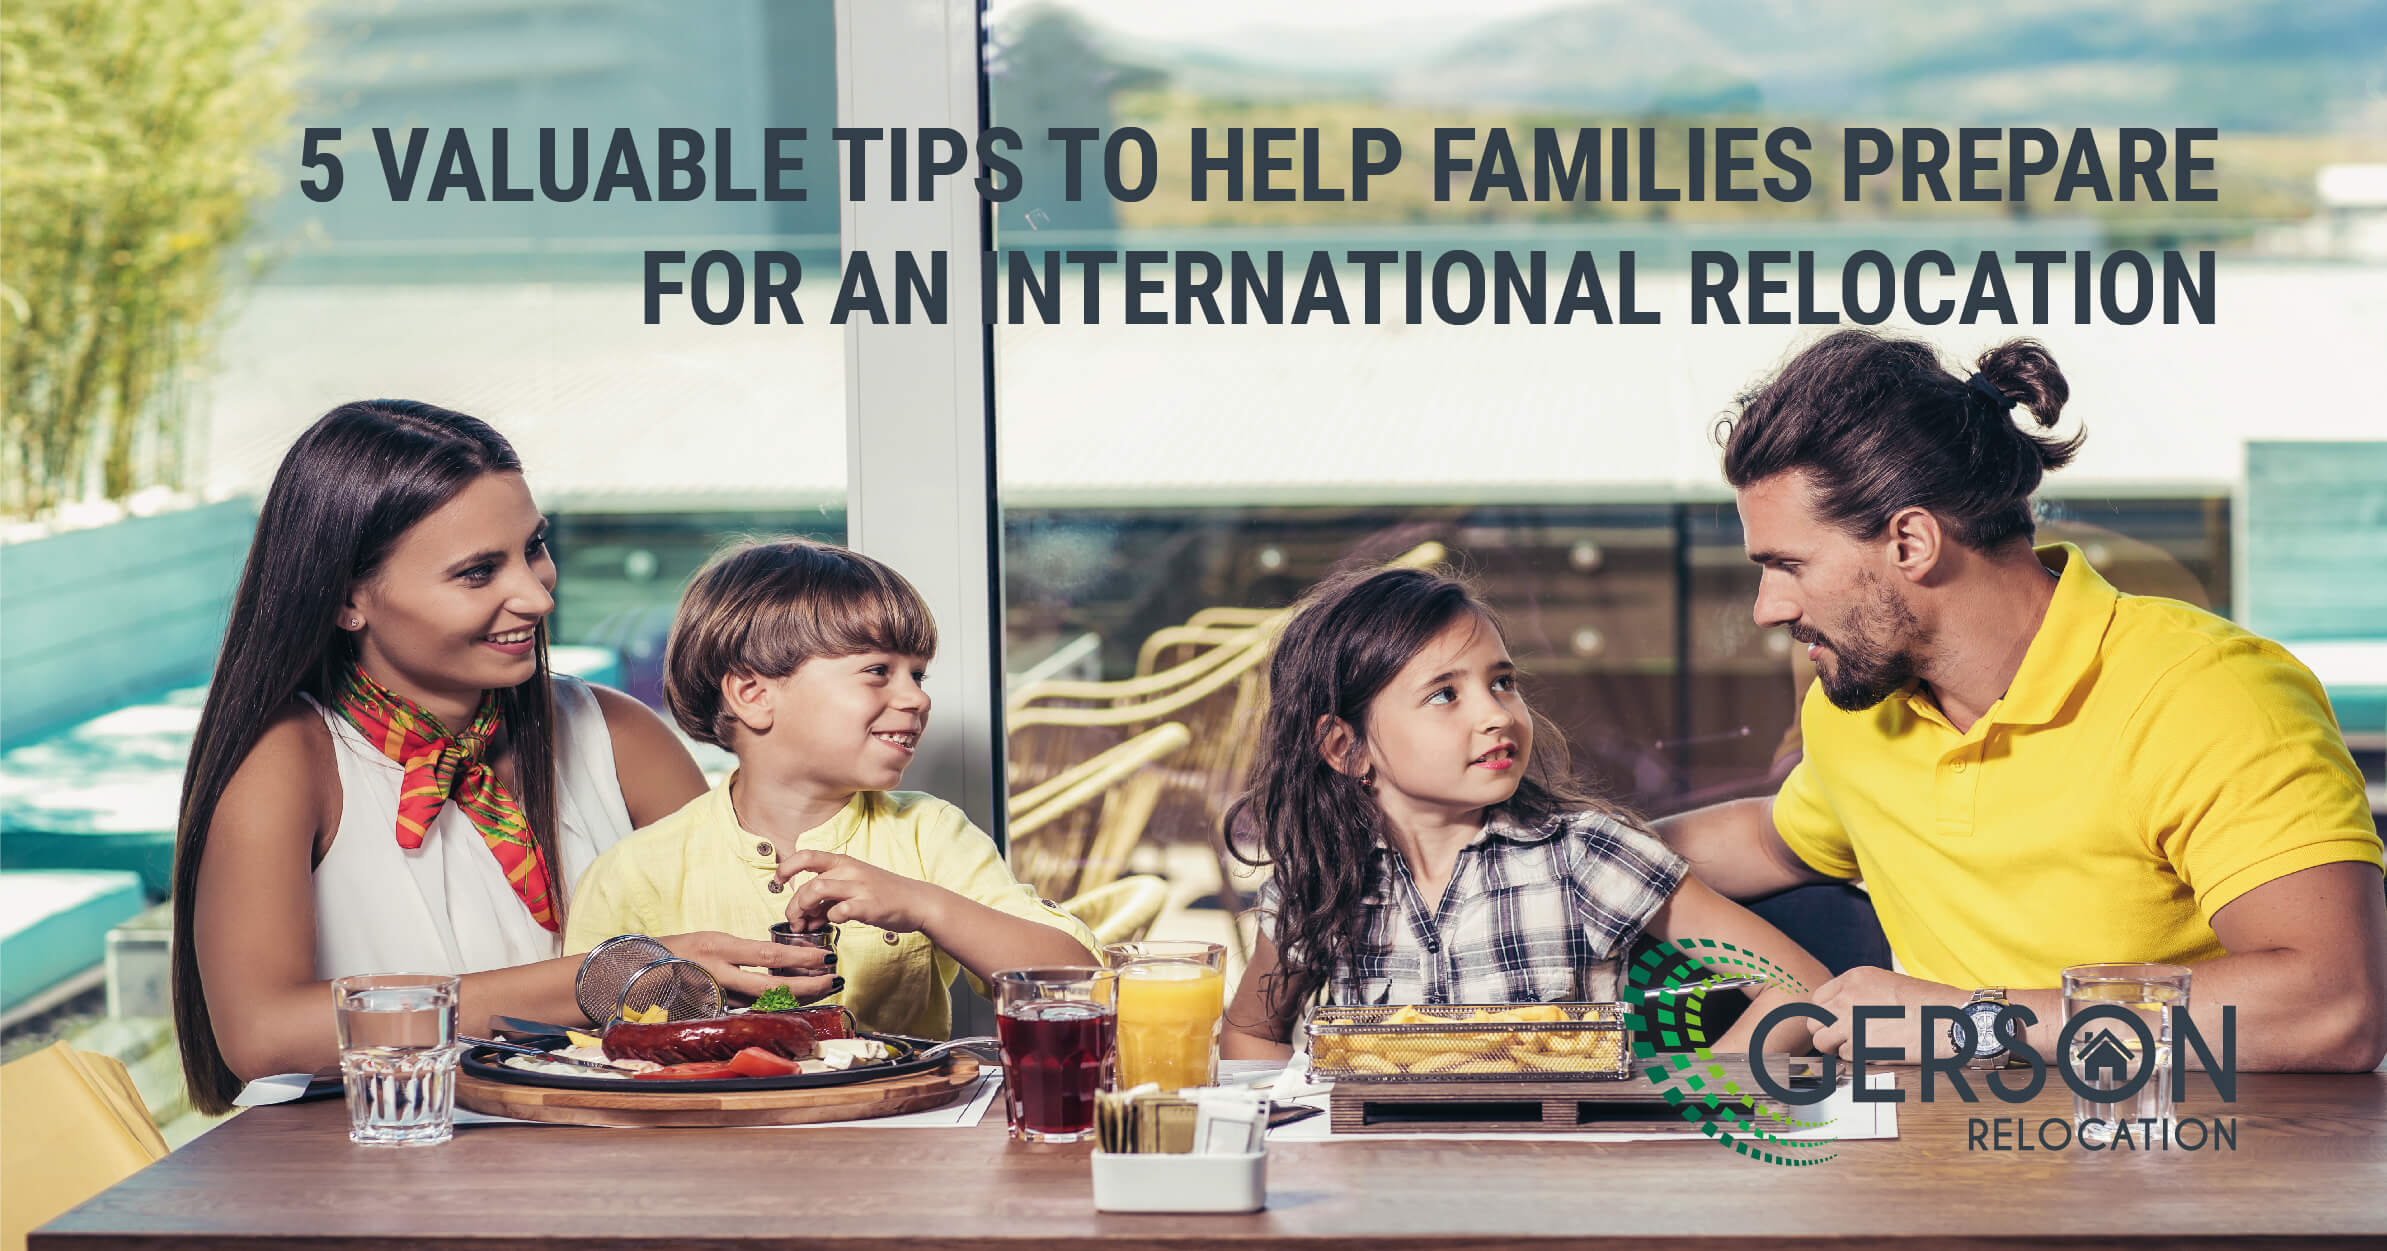 5 Valuable Tips To Help Families Prepare For An International Relocation